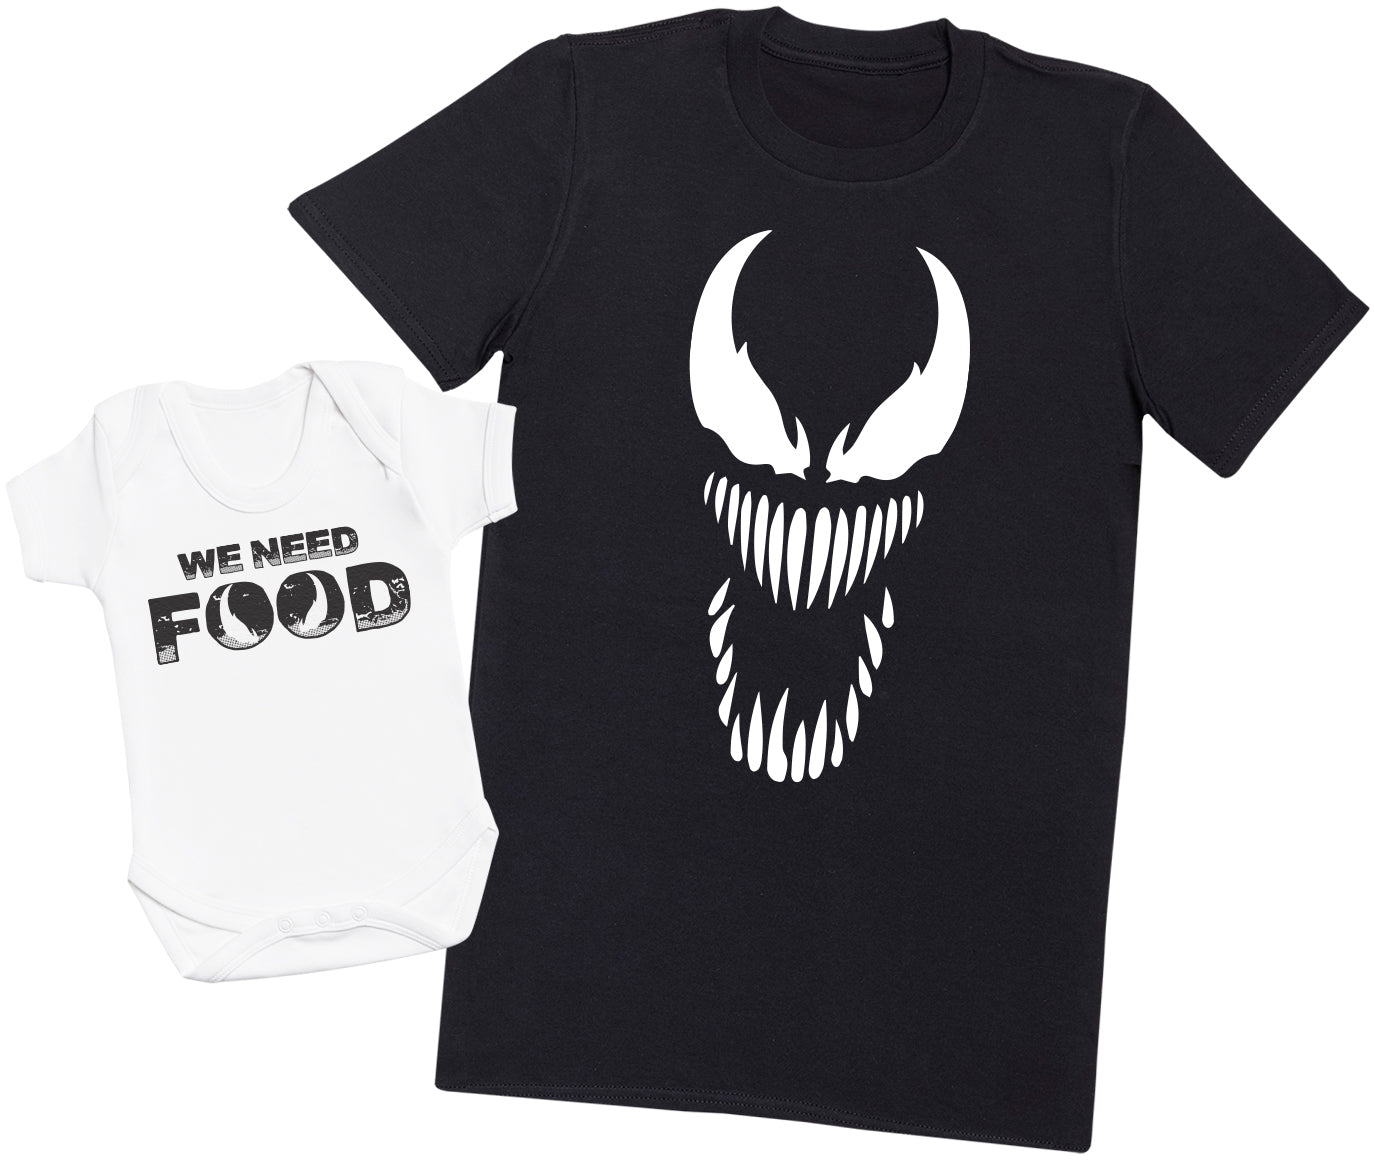 We Need FOOD - Mens T Shirt & Baby Bodysuit